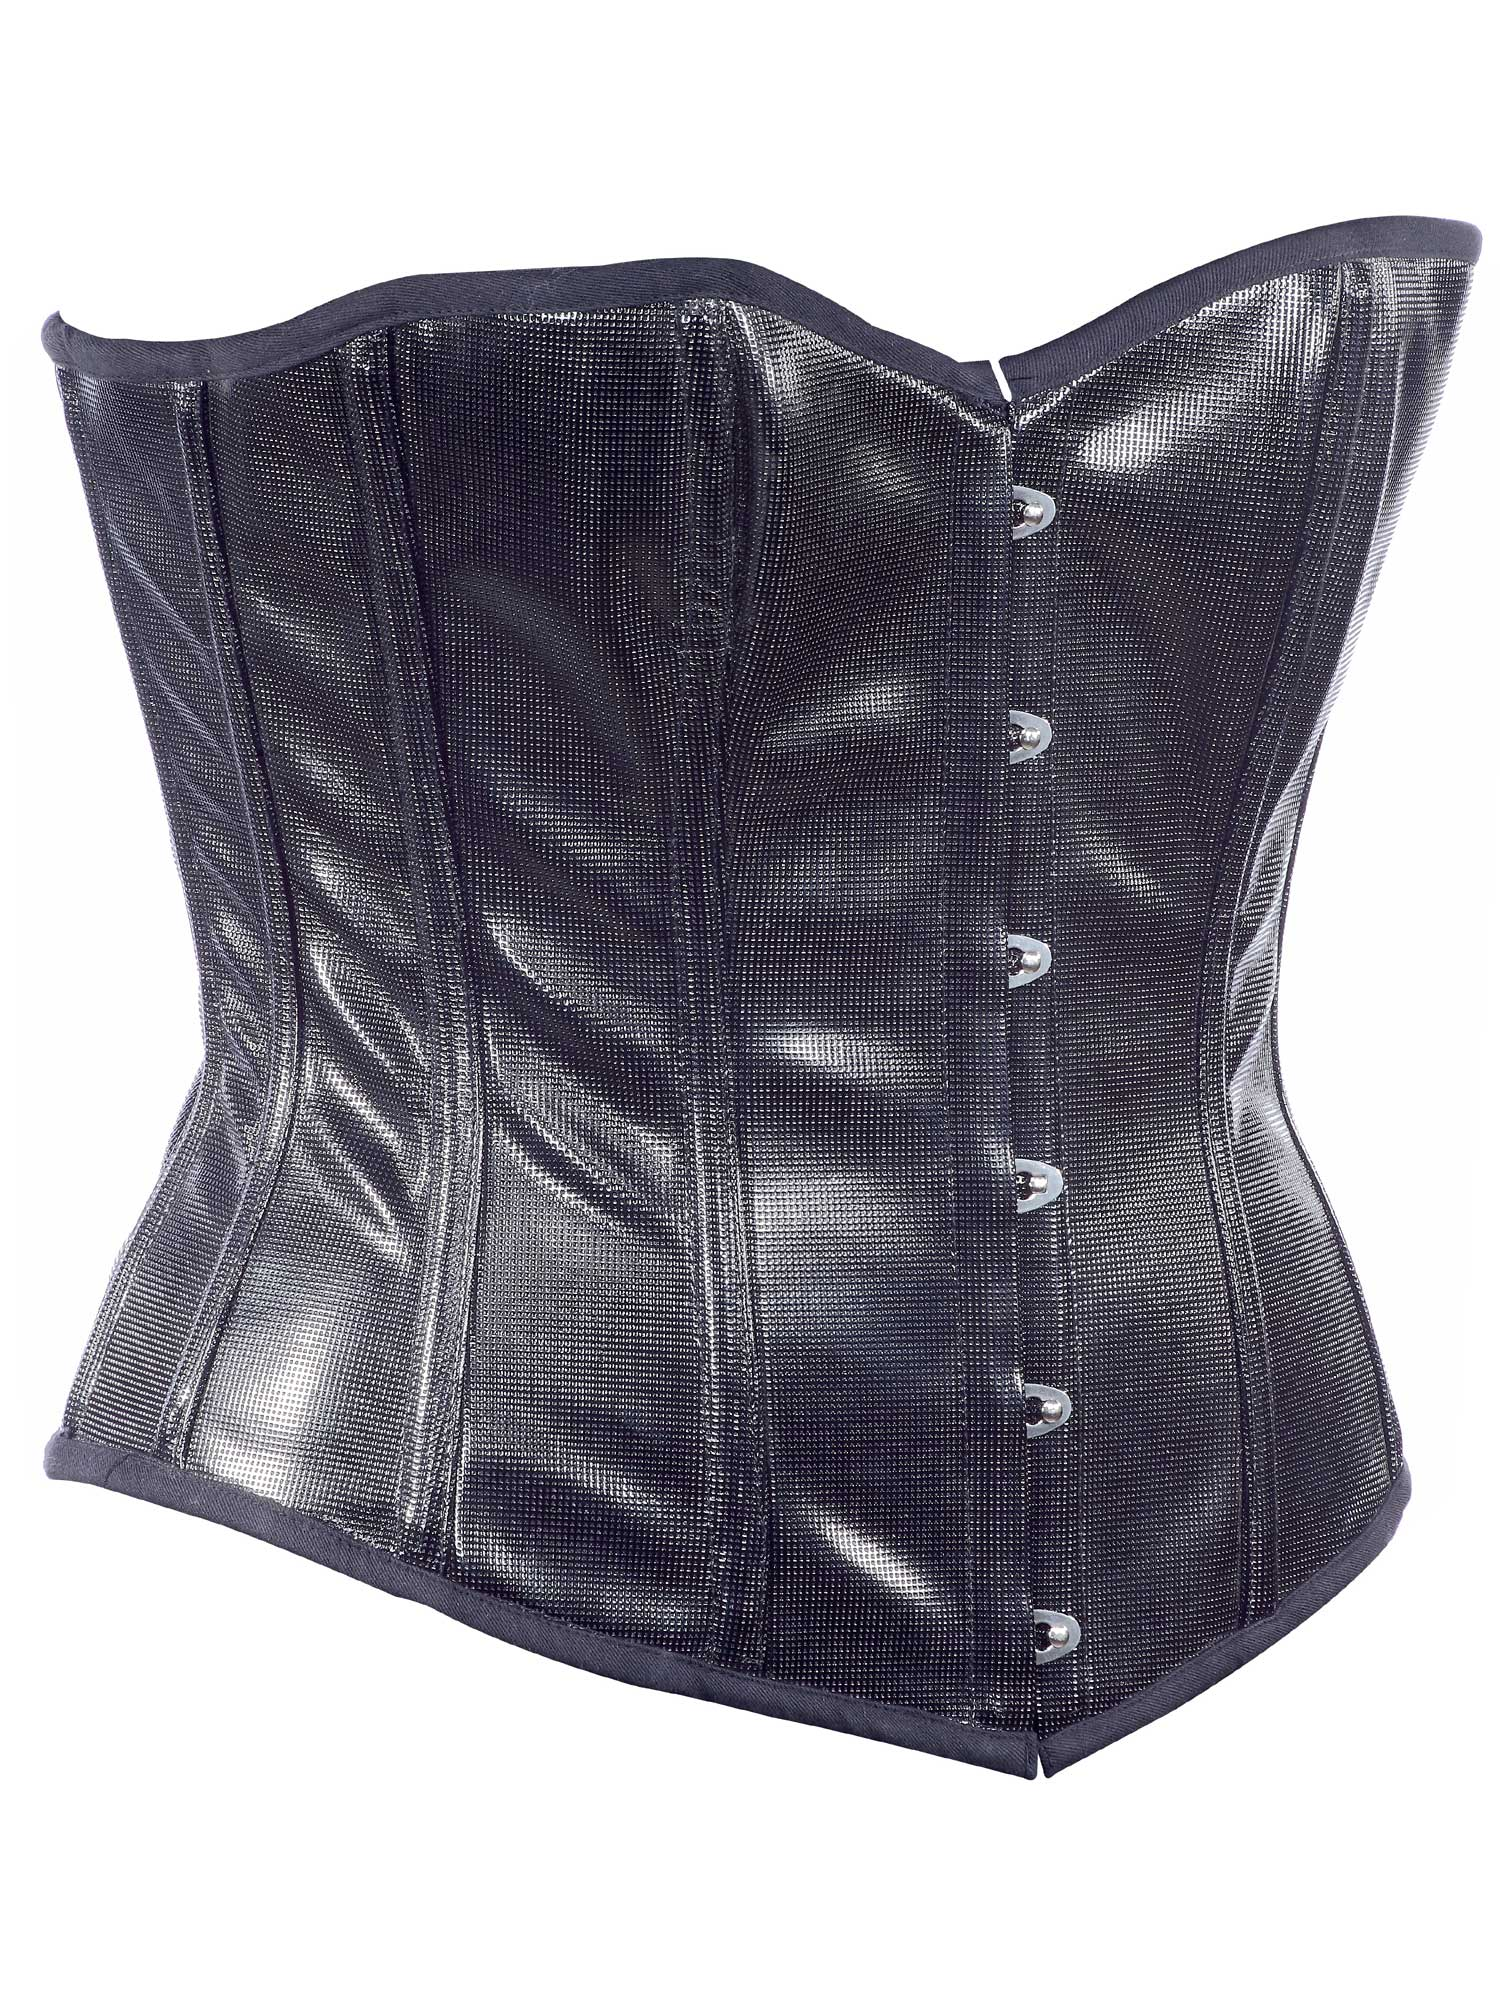 check_design_black_faux_leather_fabric_steel_boning_overbust_corset_waist_cincher_bustier_bustiers_and_corsets_4.jpg